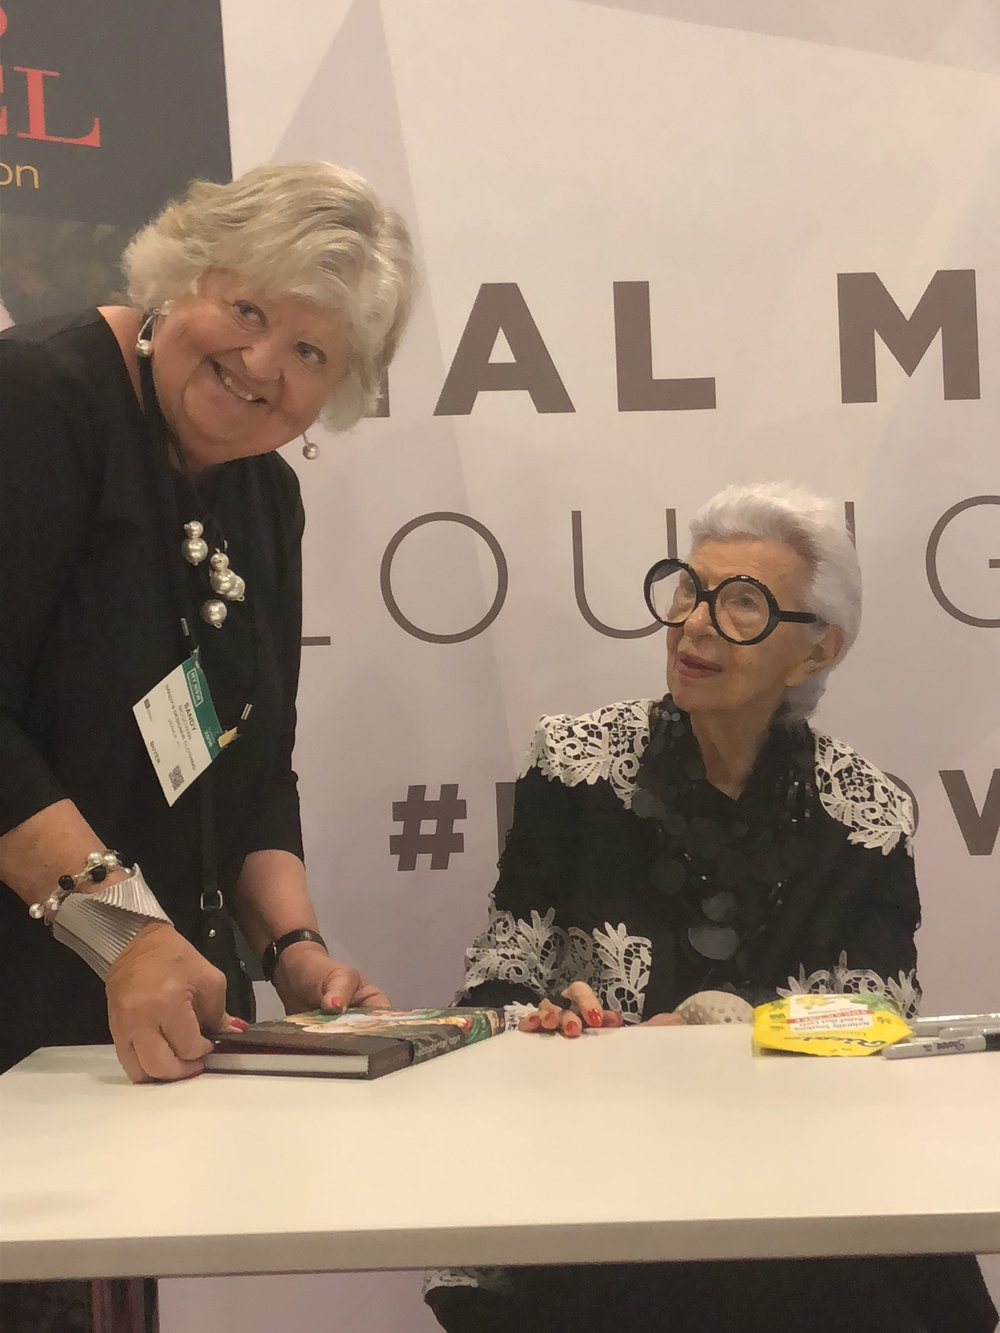 Sandy meeting her idol Iris Apfel, American business woman, interior designer and fashion icon, at the NY NOW show in NYC, August 2018.